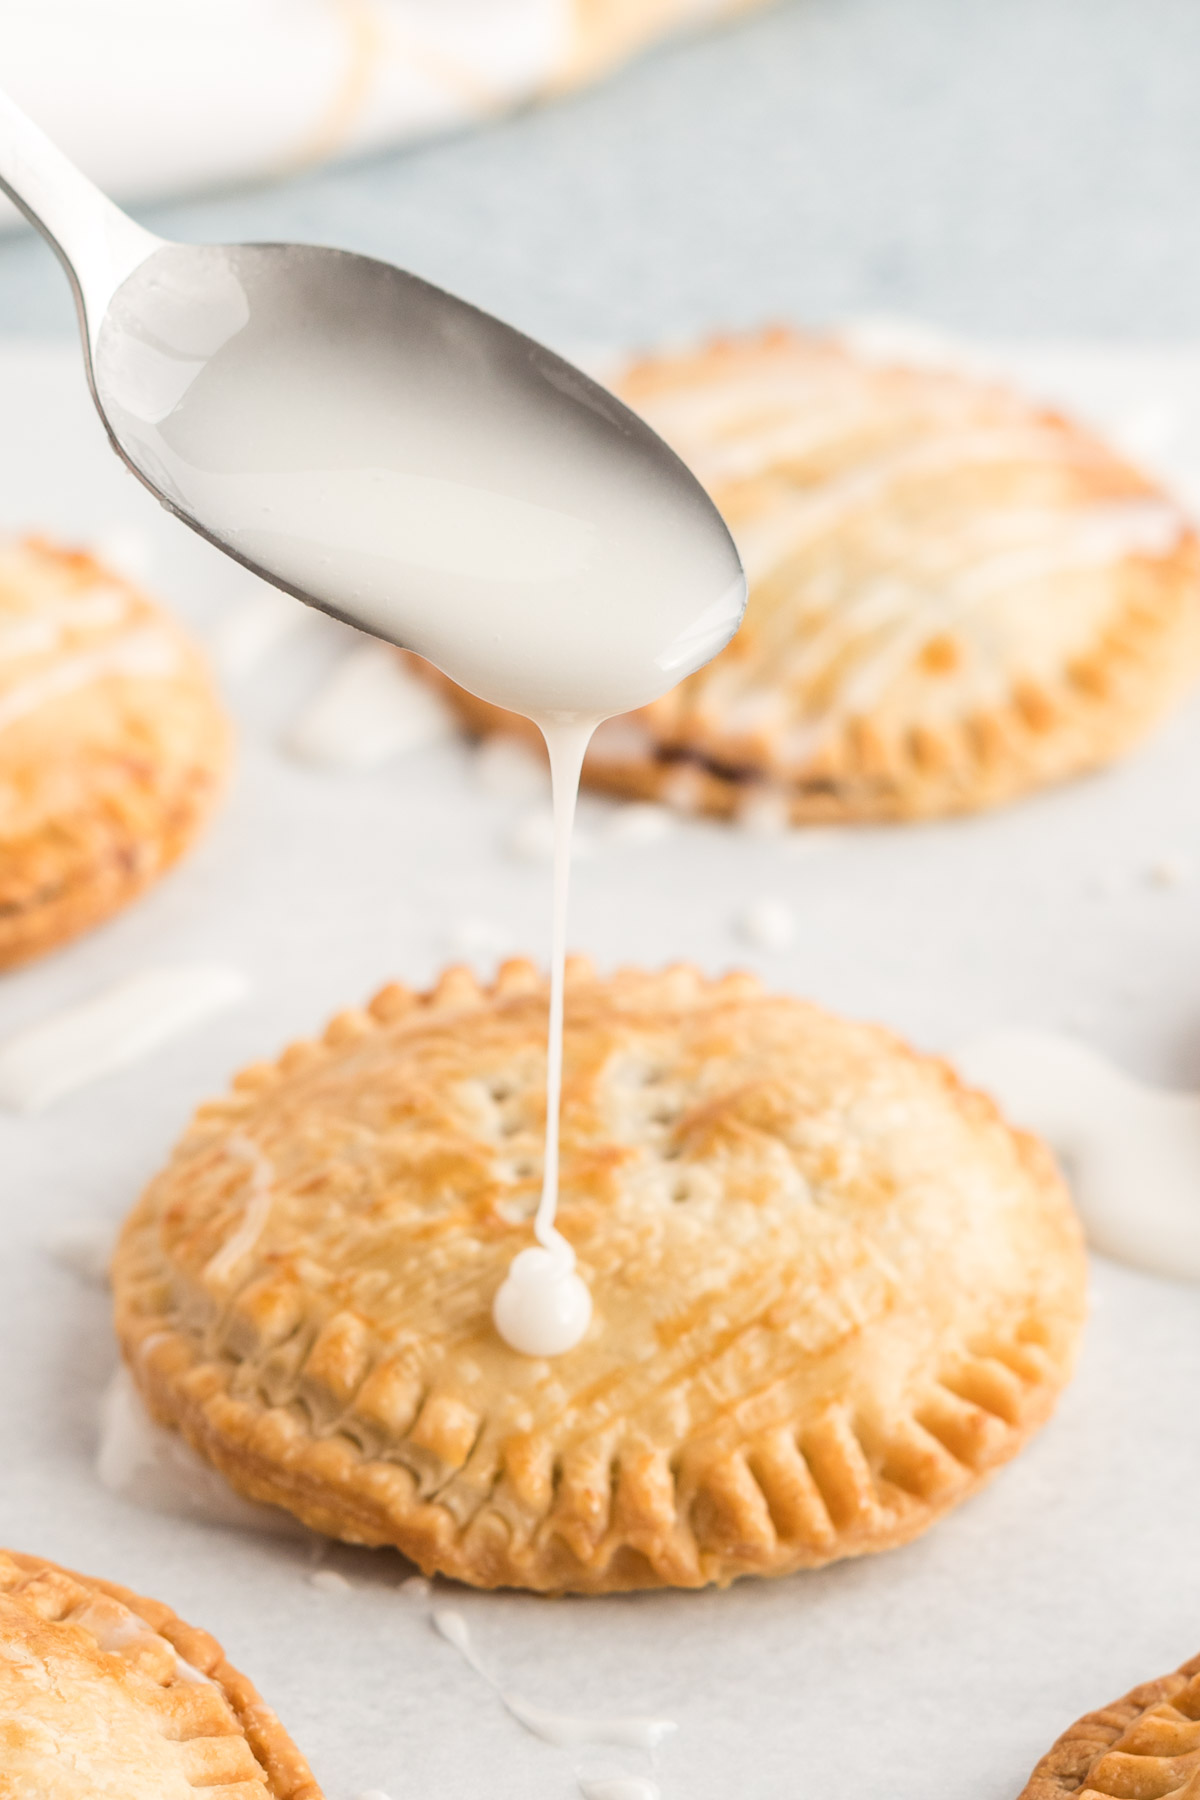 A spoon of icing being drizzled over hand pie.